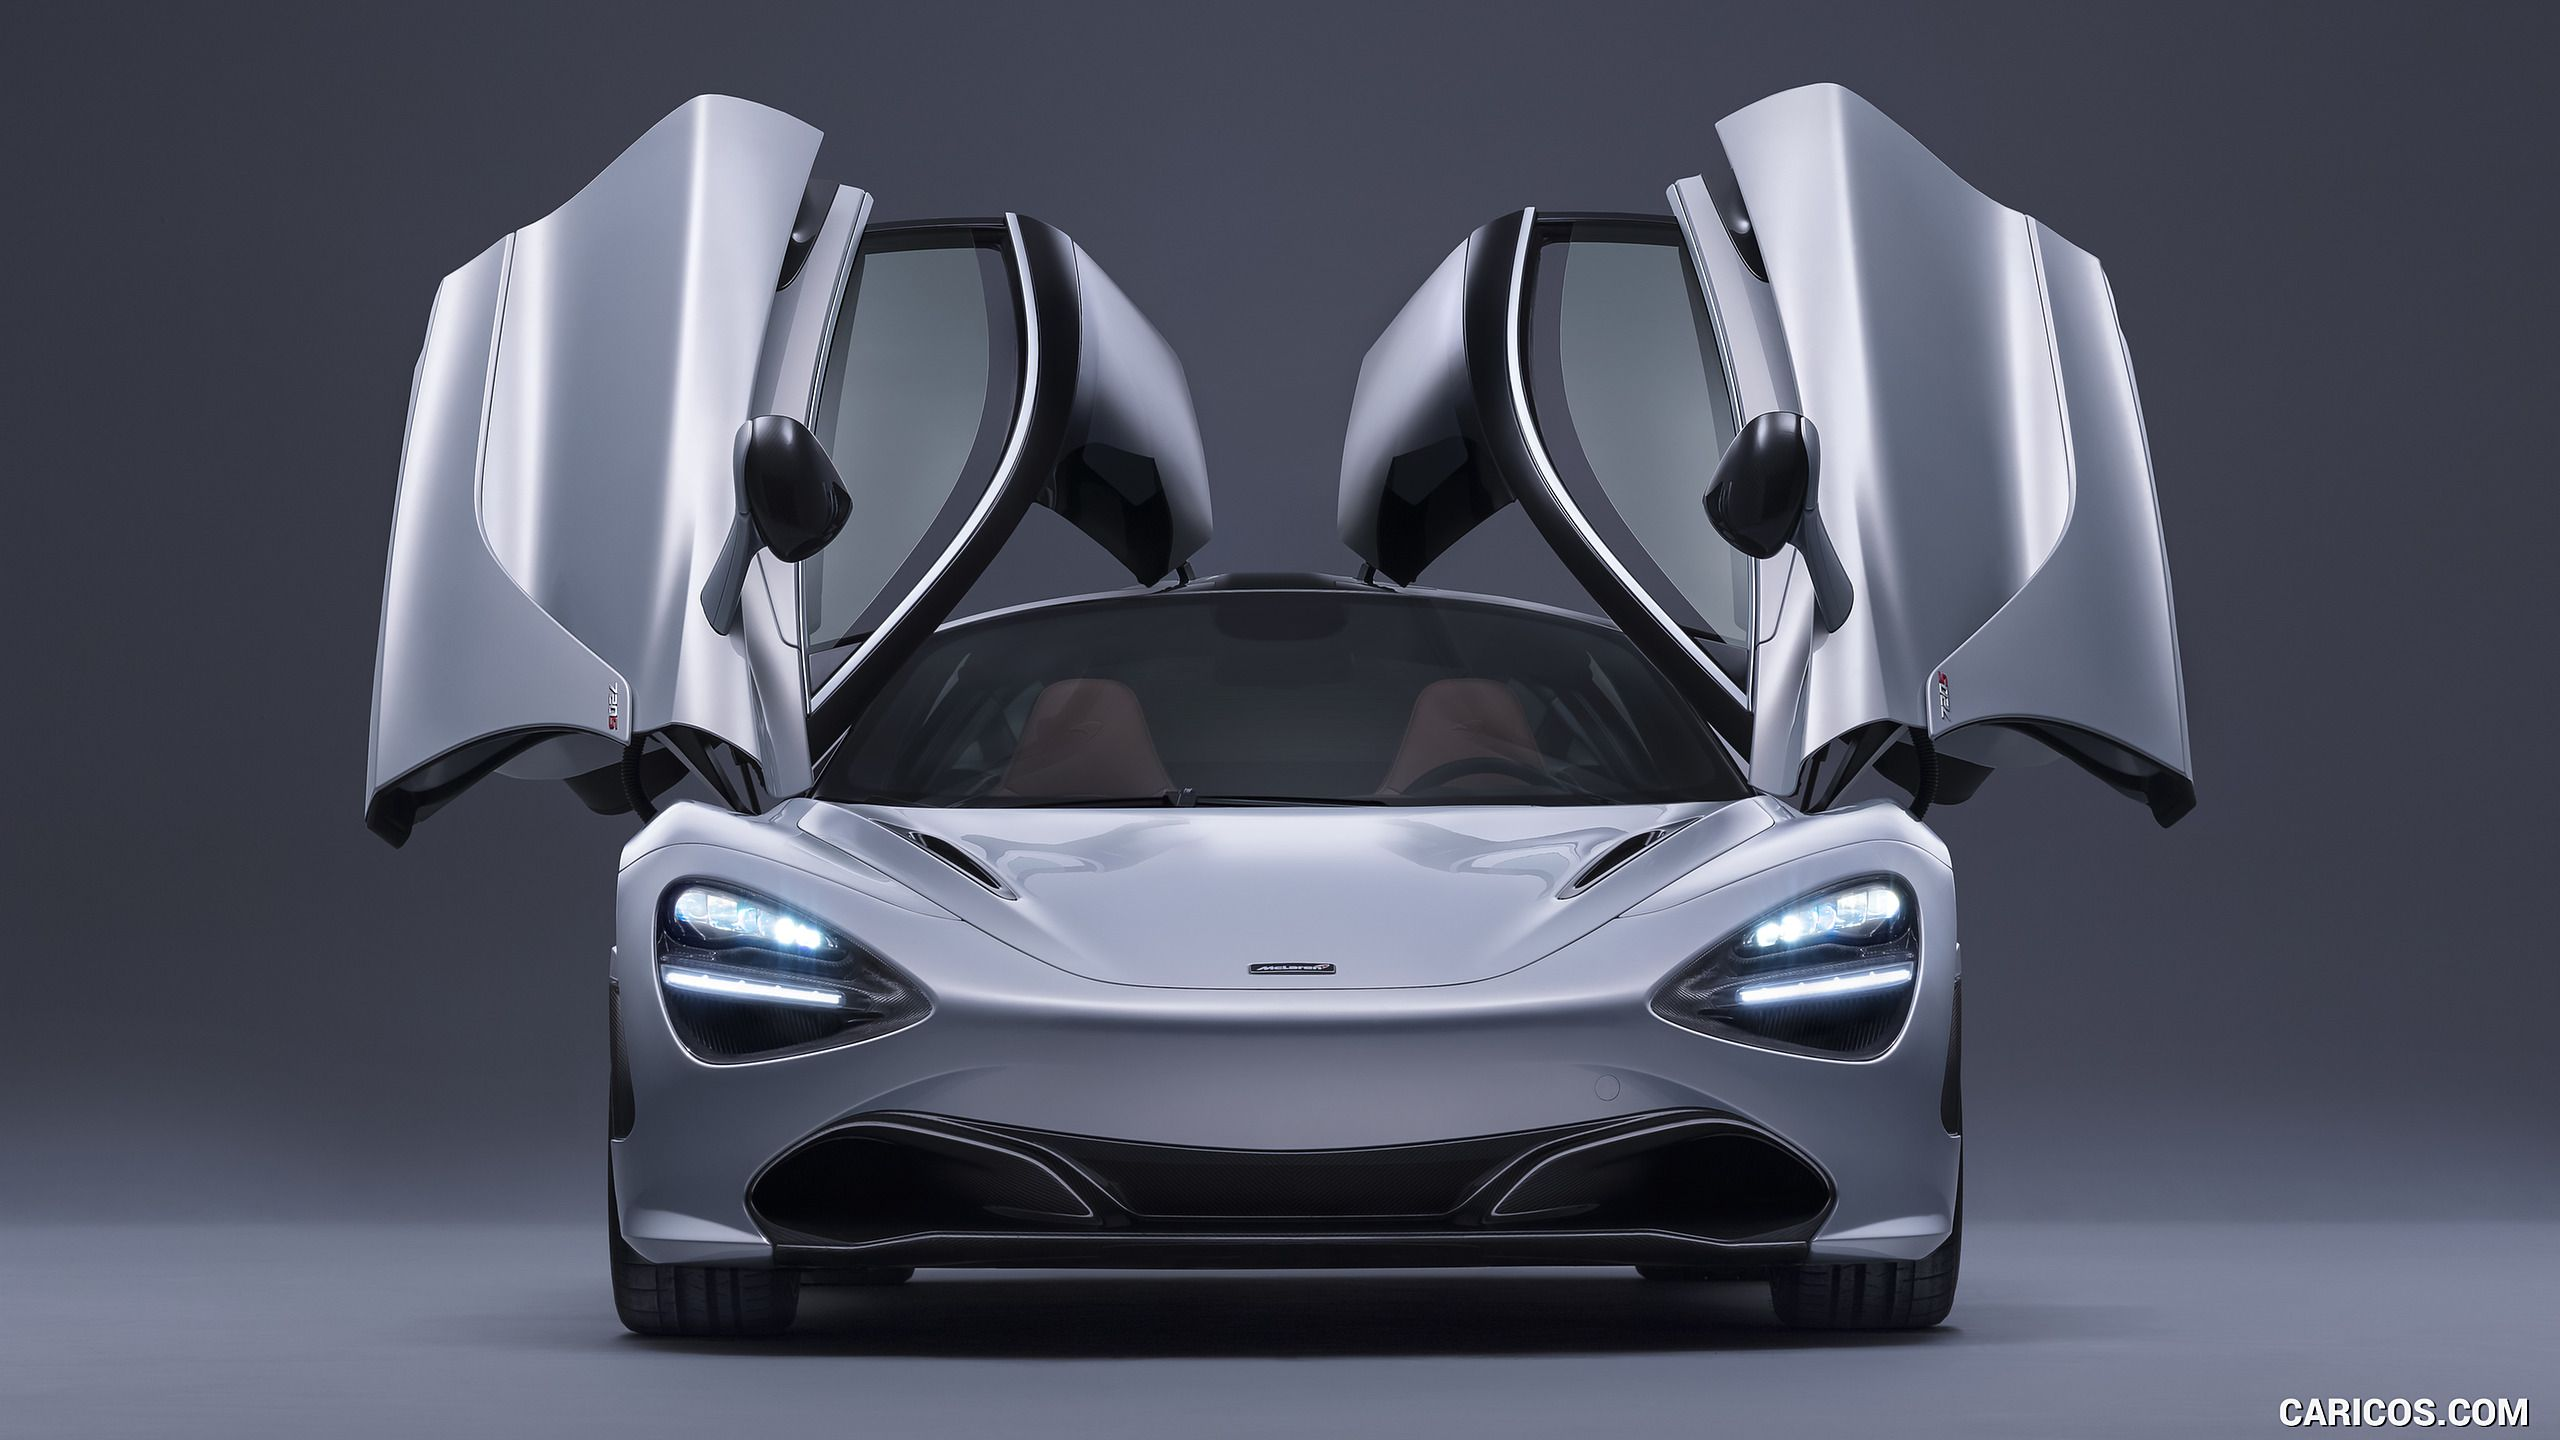 2018 Mclaren 720s Wallpaper Inglish Cars Pinterest Cars